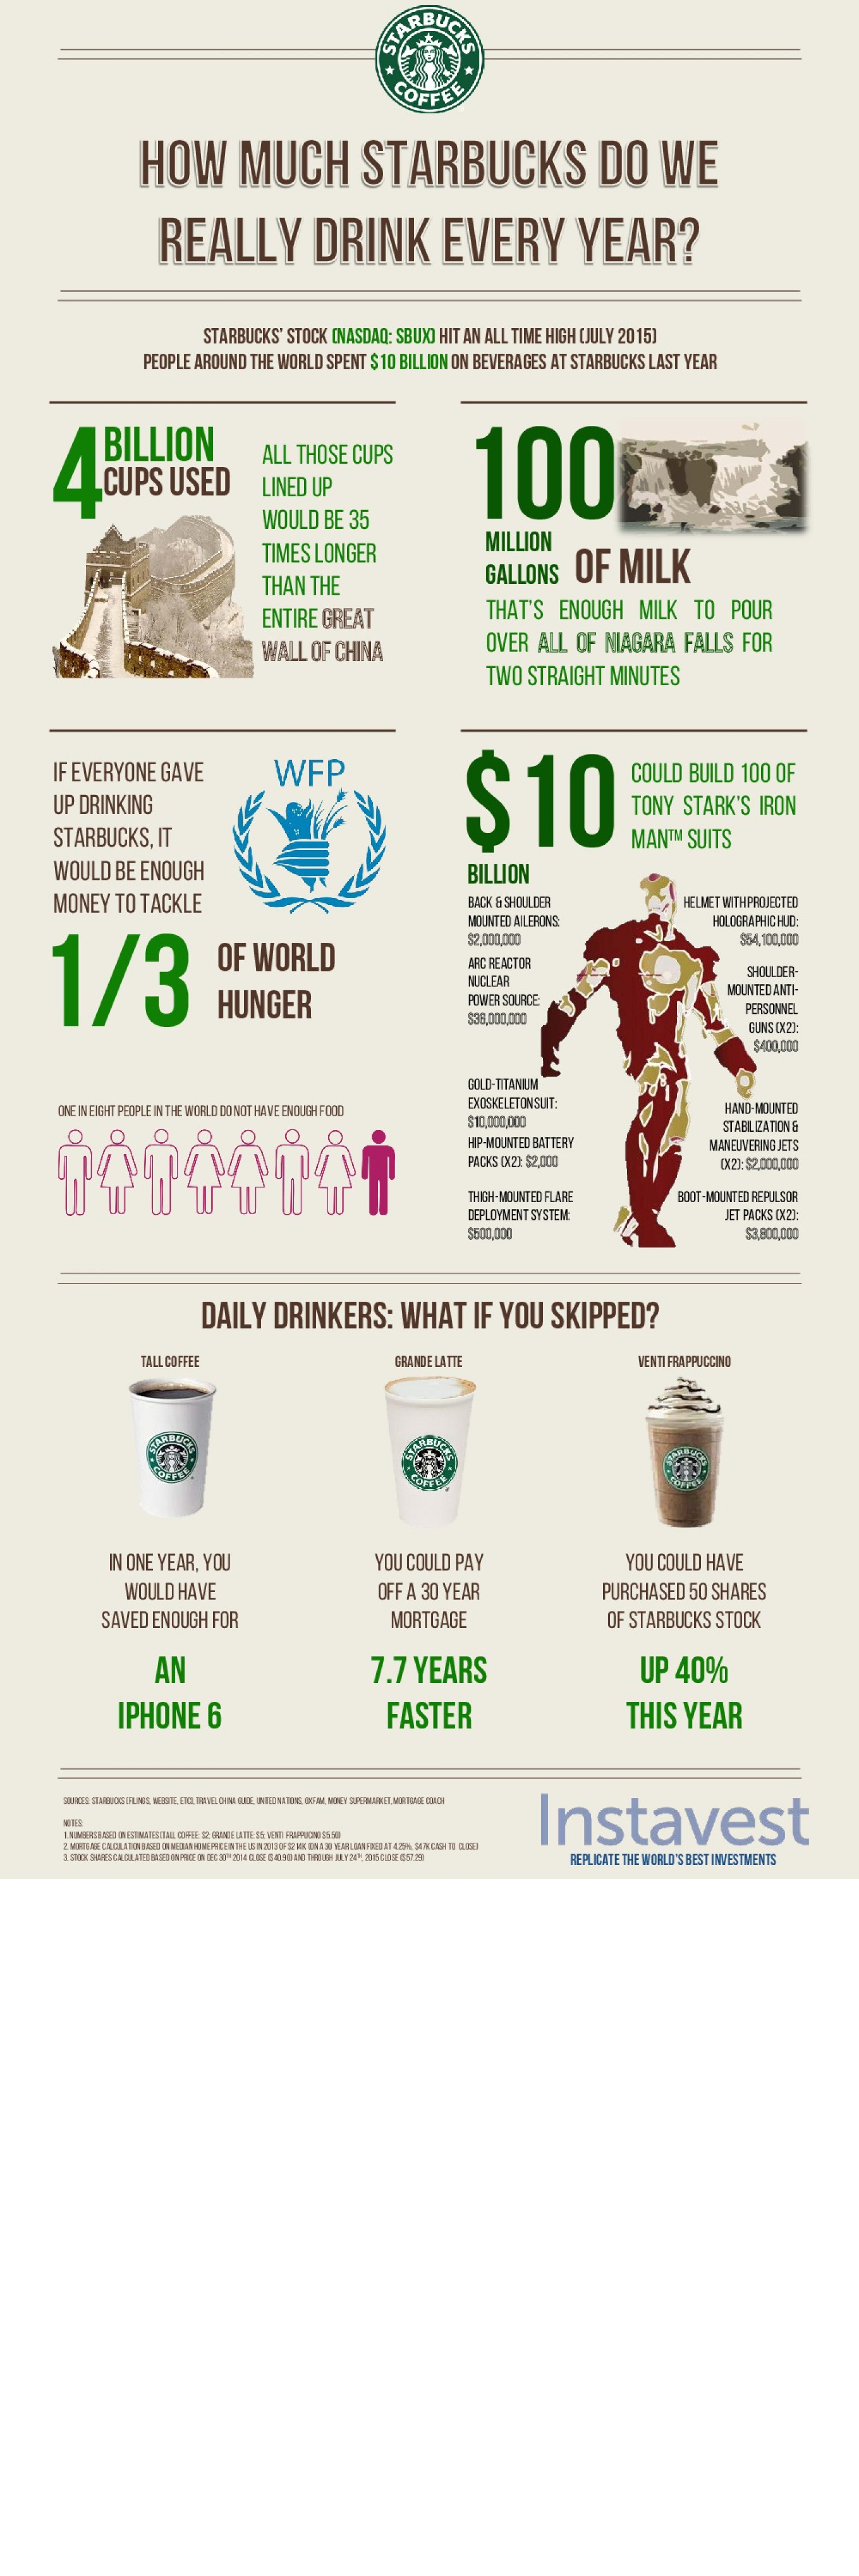 Infographic: How much Starbucks do we really drink? Infographic